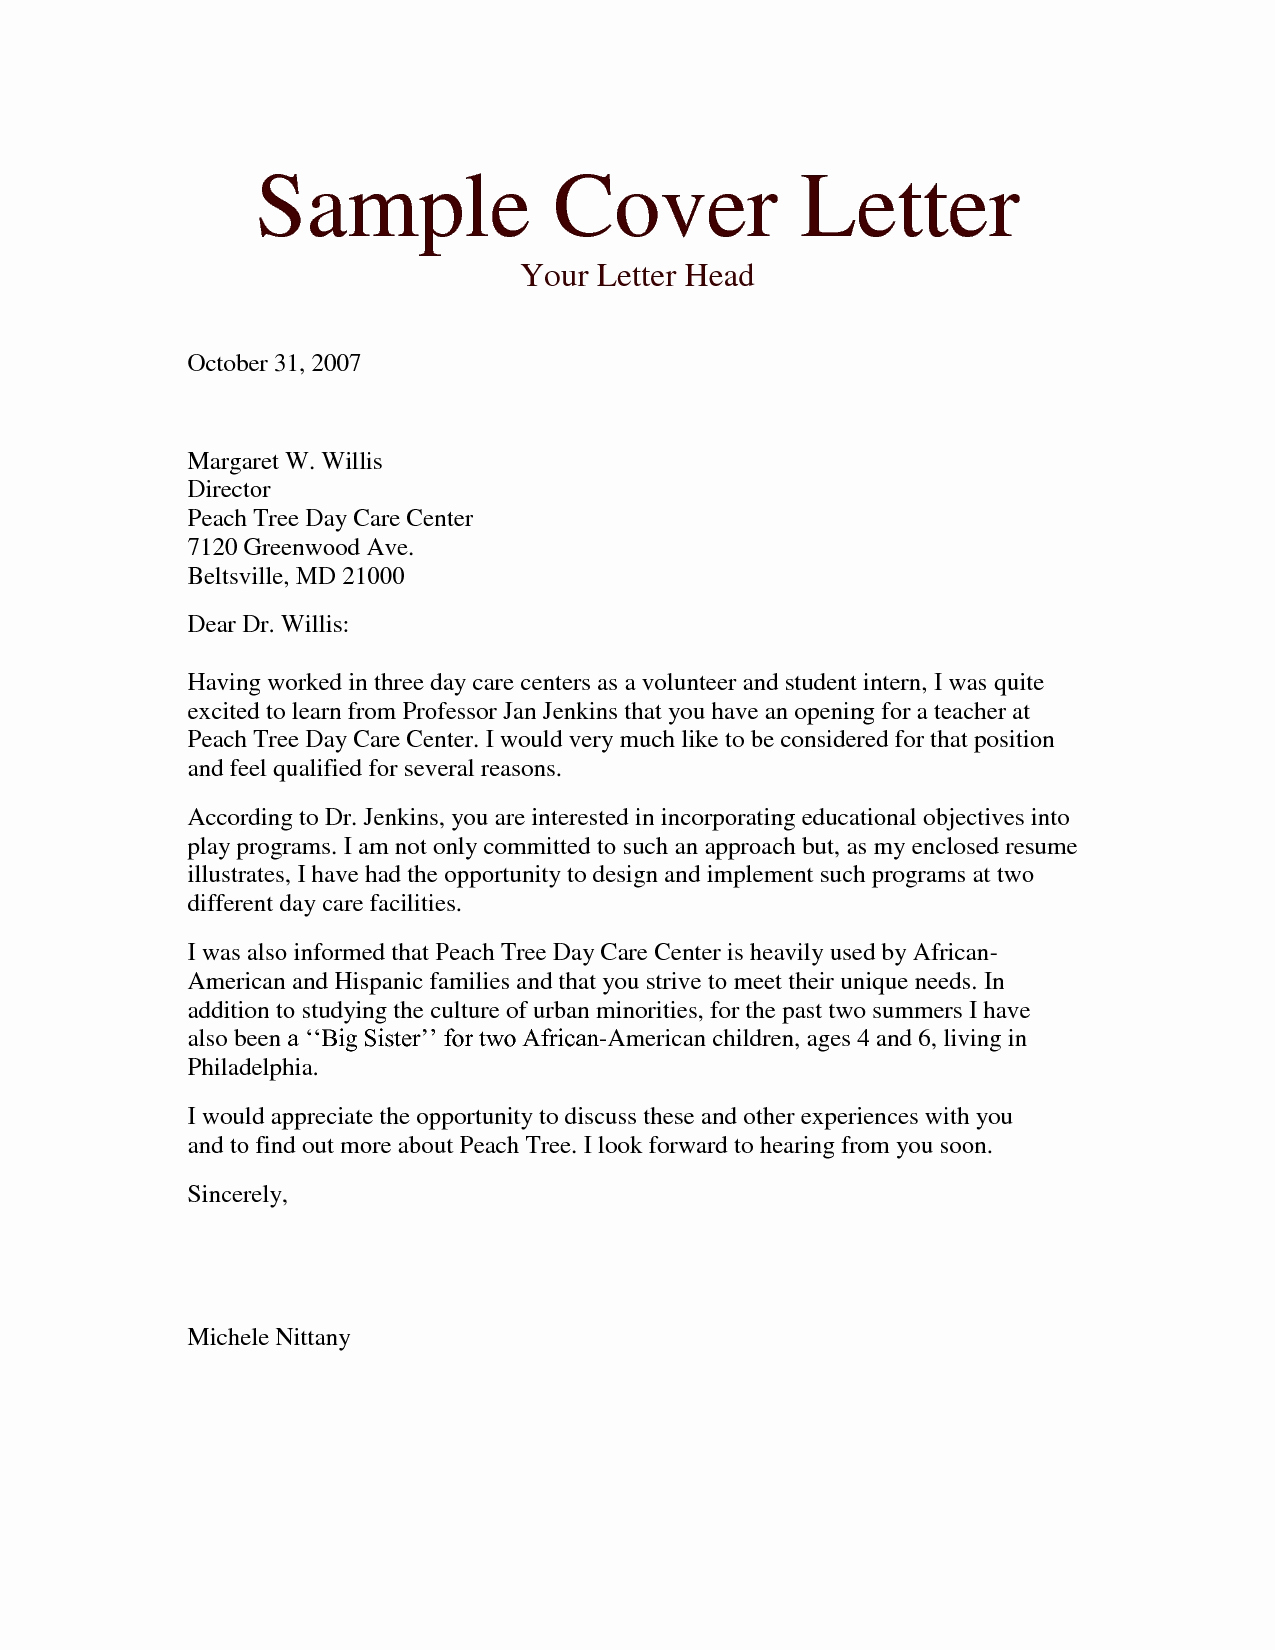 Child Care Authorization Letter Template - Free Medical Consent form Child Medical Consent form Authorization